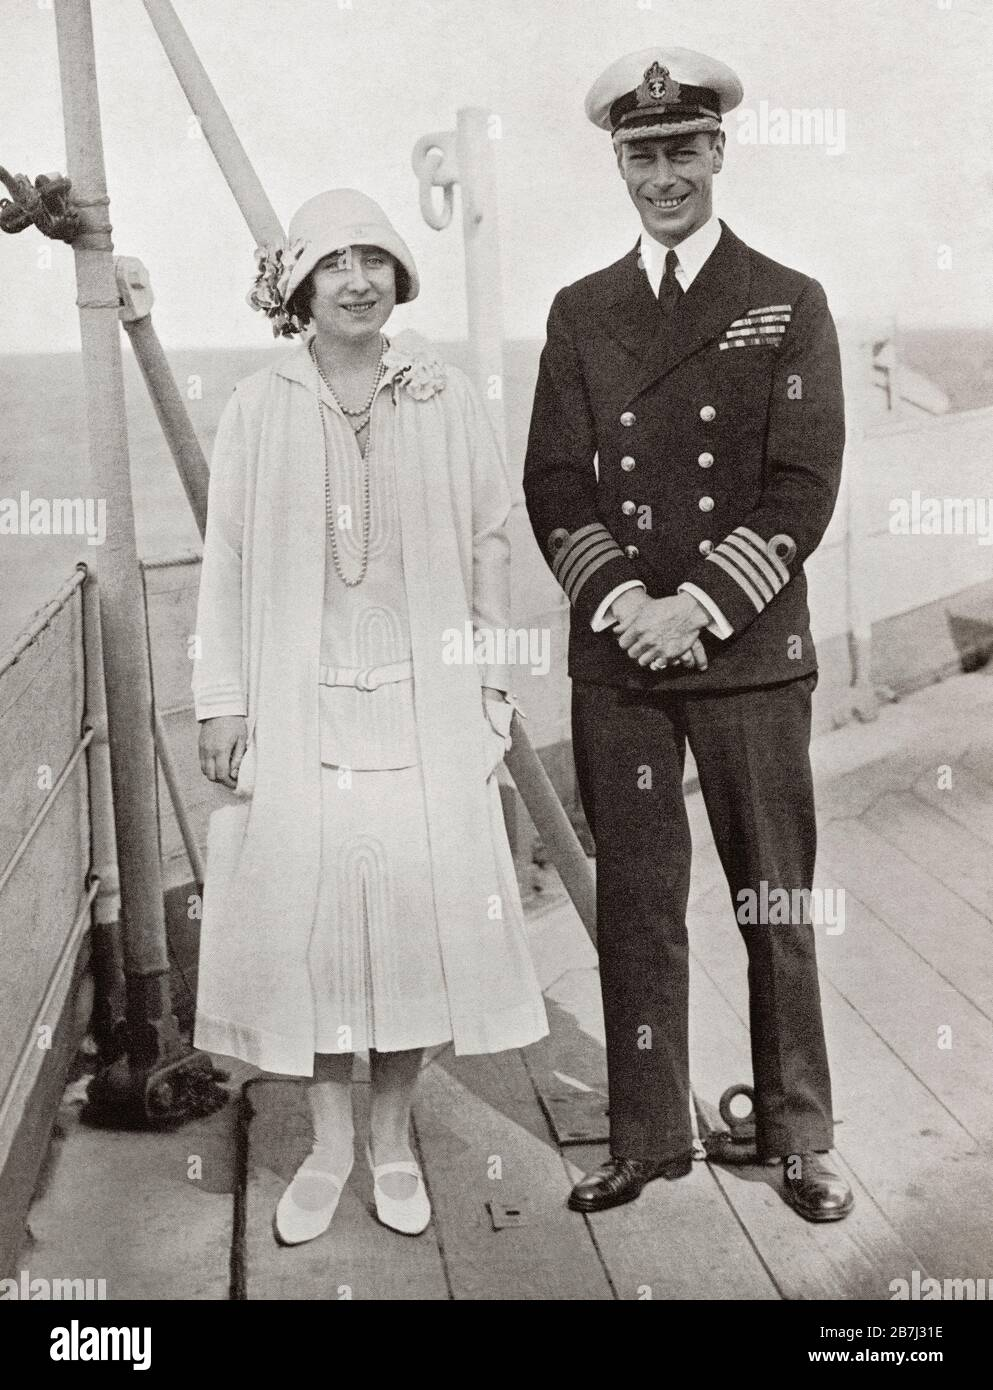 The Duke and Duchess of York aboard the H.M.S. Renown in 1927.  Prince Albert Frederick Arthur George, Duke of York, future George VI, 1895 – 1952.  King of the United Kingdom and the Dominions of the British Commonwealth. Duchess of  York, future Queen Elizabeth, The Queen Mother.  Elizabeth Angela Marguerite Bowes-Lyon, 1900 – 2002.  Wife of King George VI and mother of Queen Elizabeth II.  From King George the Sixth, published 1937. Stock Photo